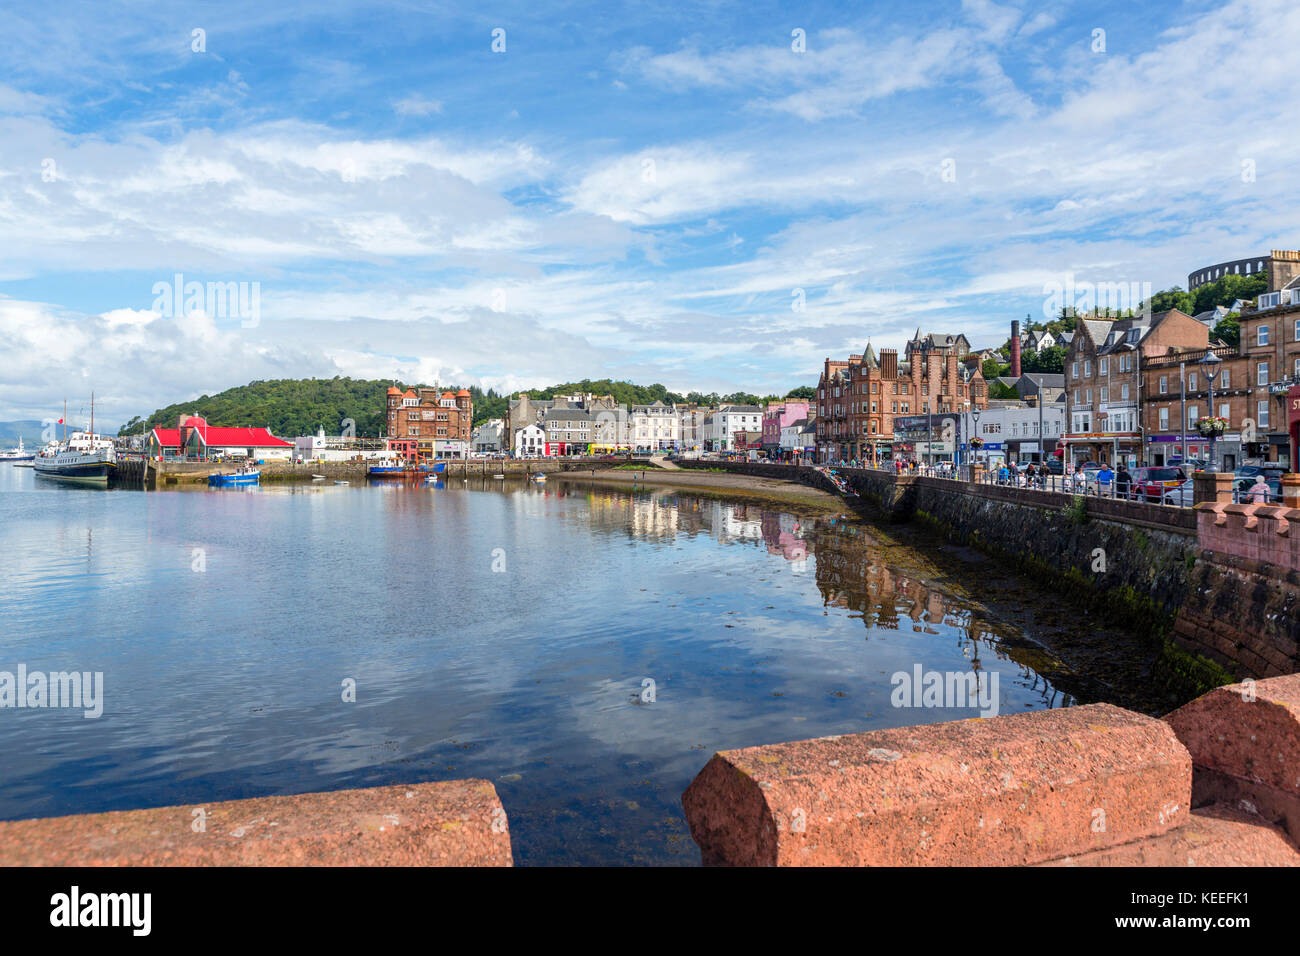 Seafront and harbour in Oban town centre, Argyll and Bute, Scotland, UK - Stock Image